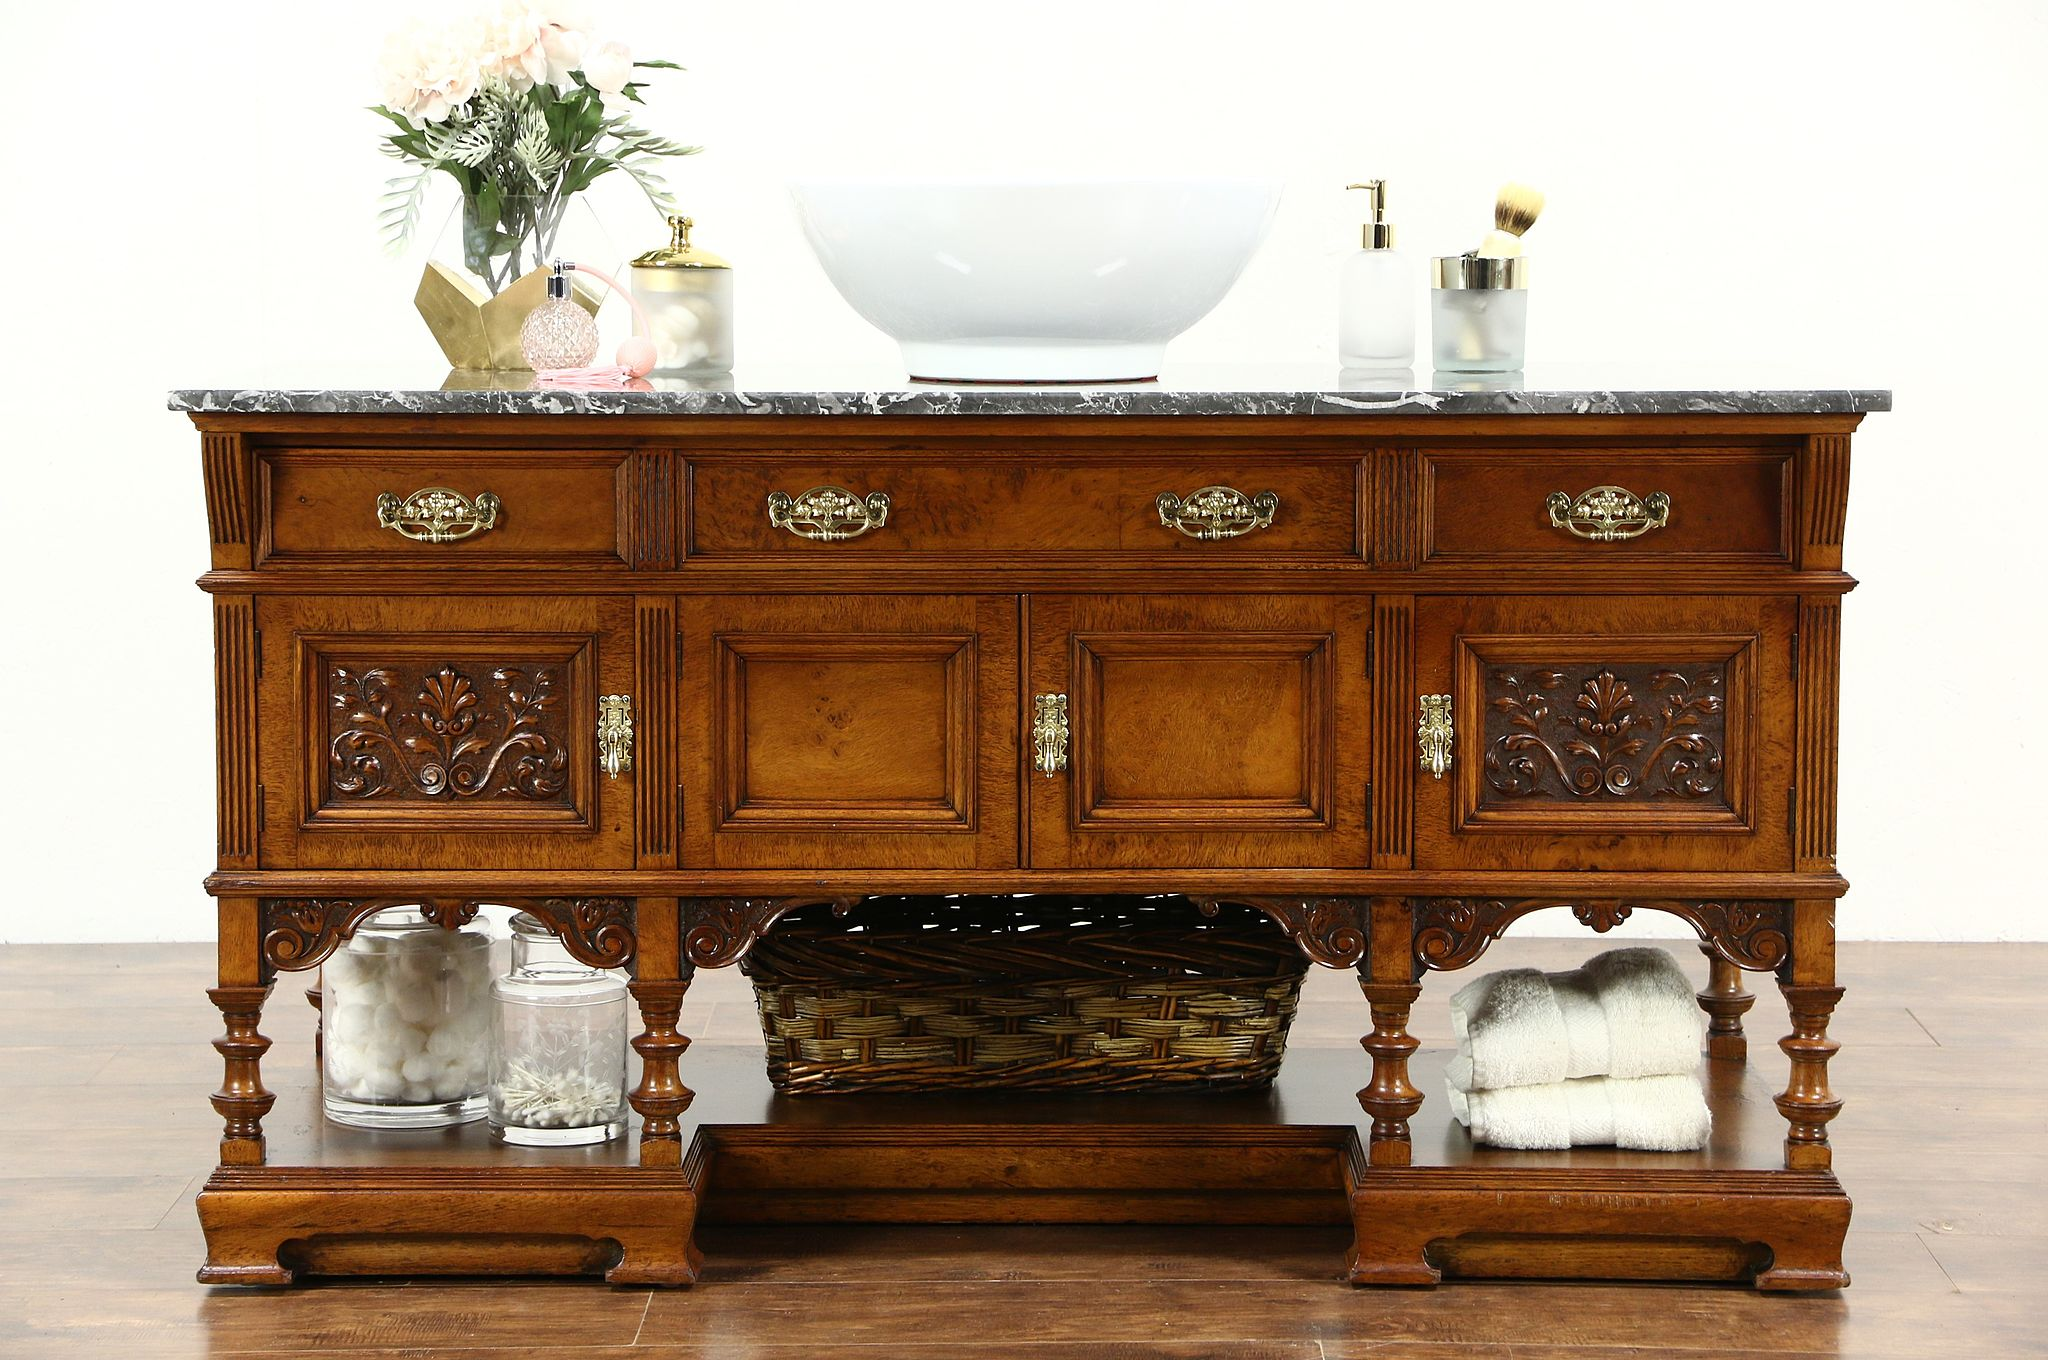 Carved Walnut Antique Marble Top Vessel Sink Vanity Console Cabinet